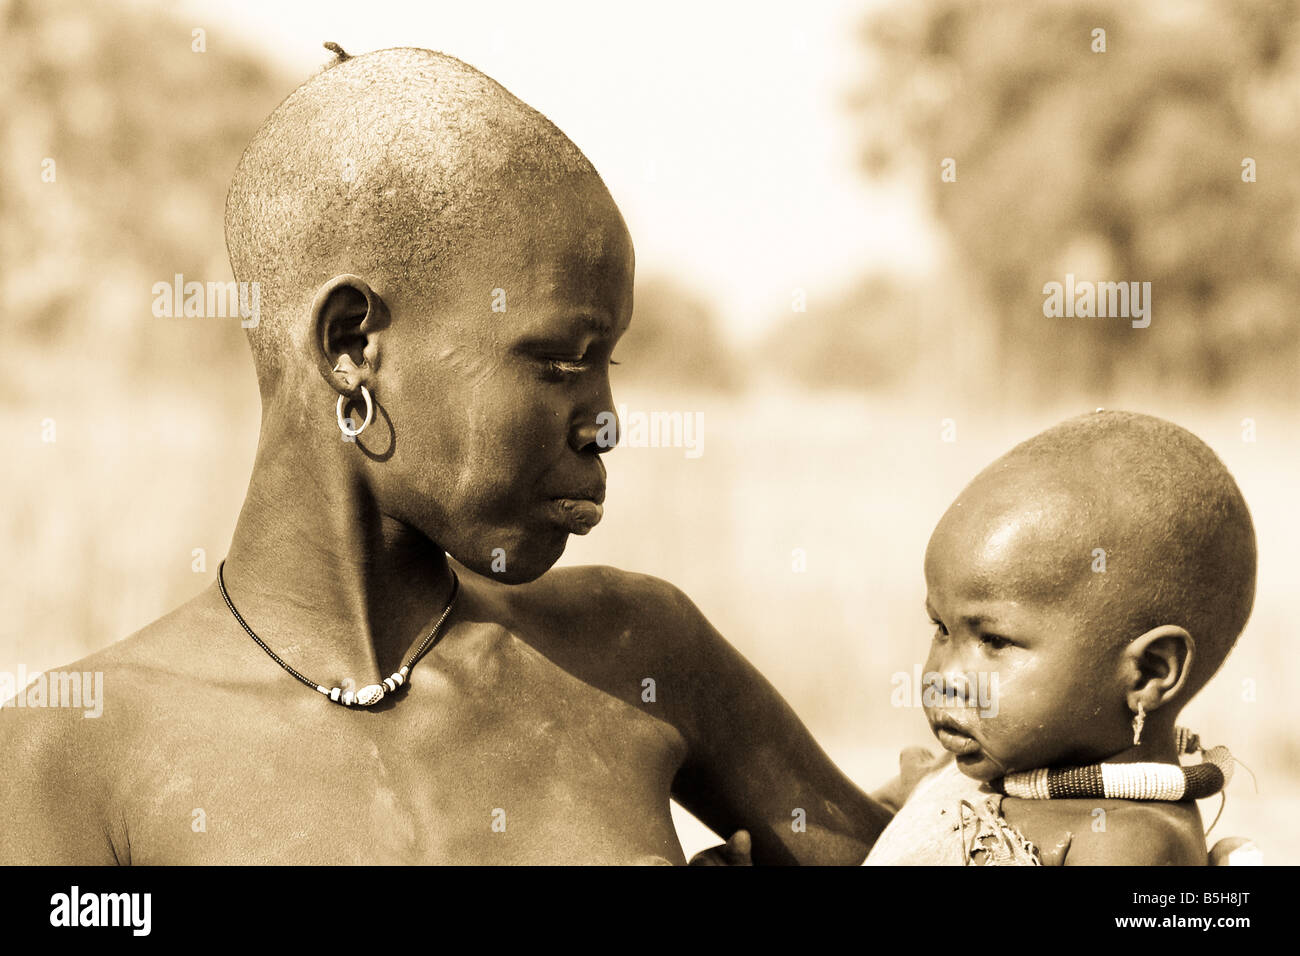 A Dinka woman in Kotobi, South Sudan holds her child in her arms. - Stock Image